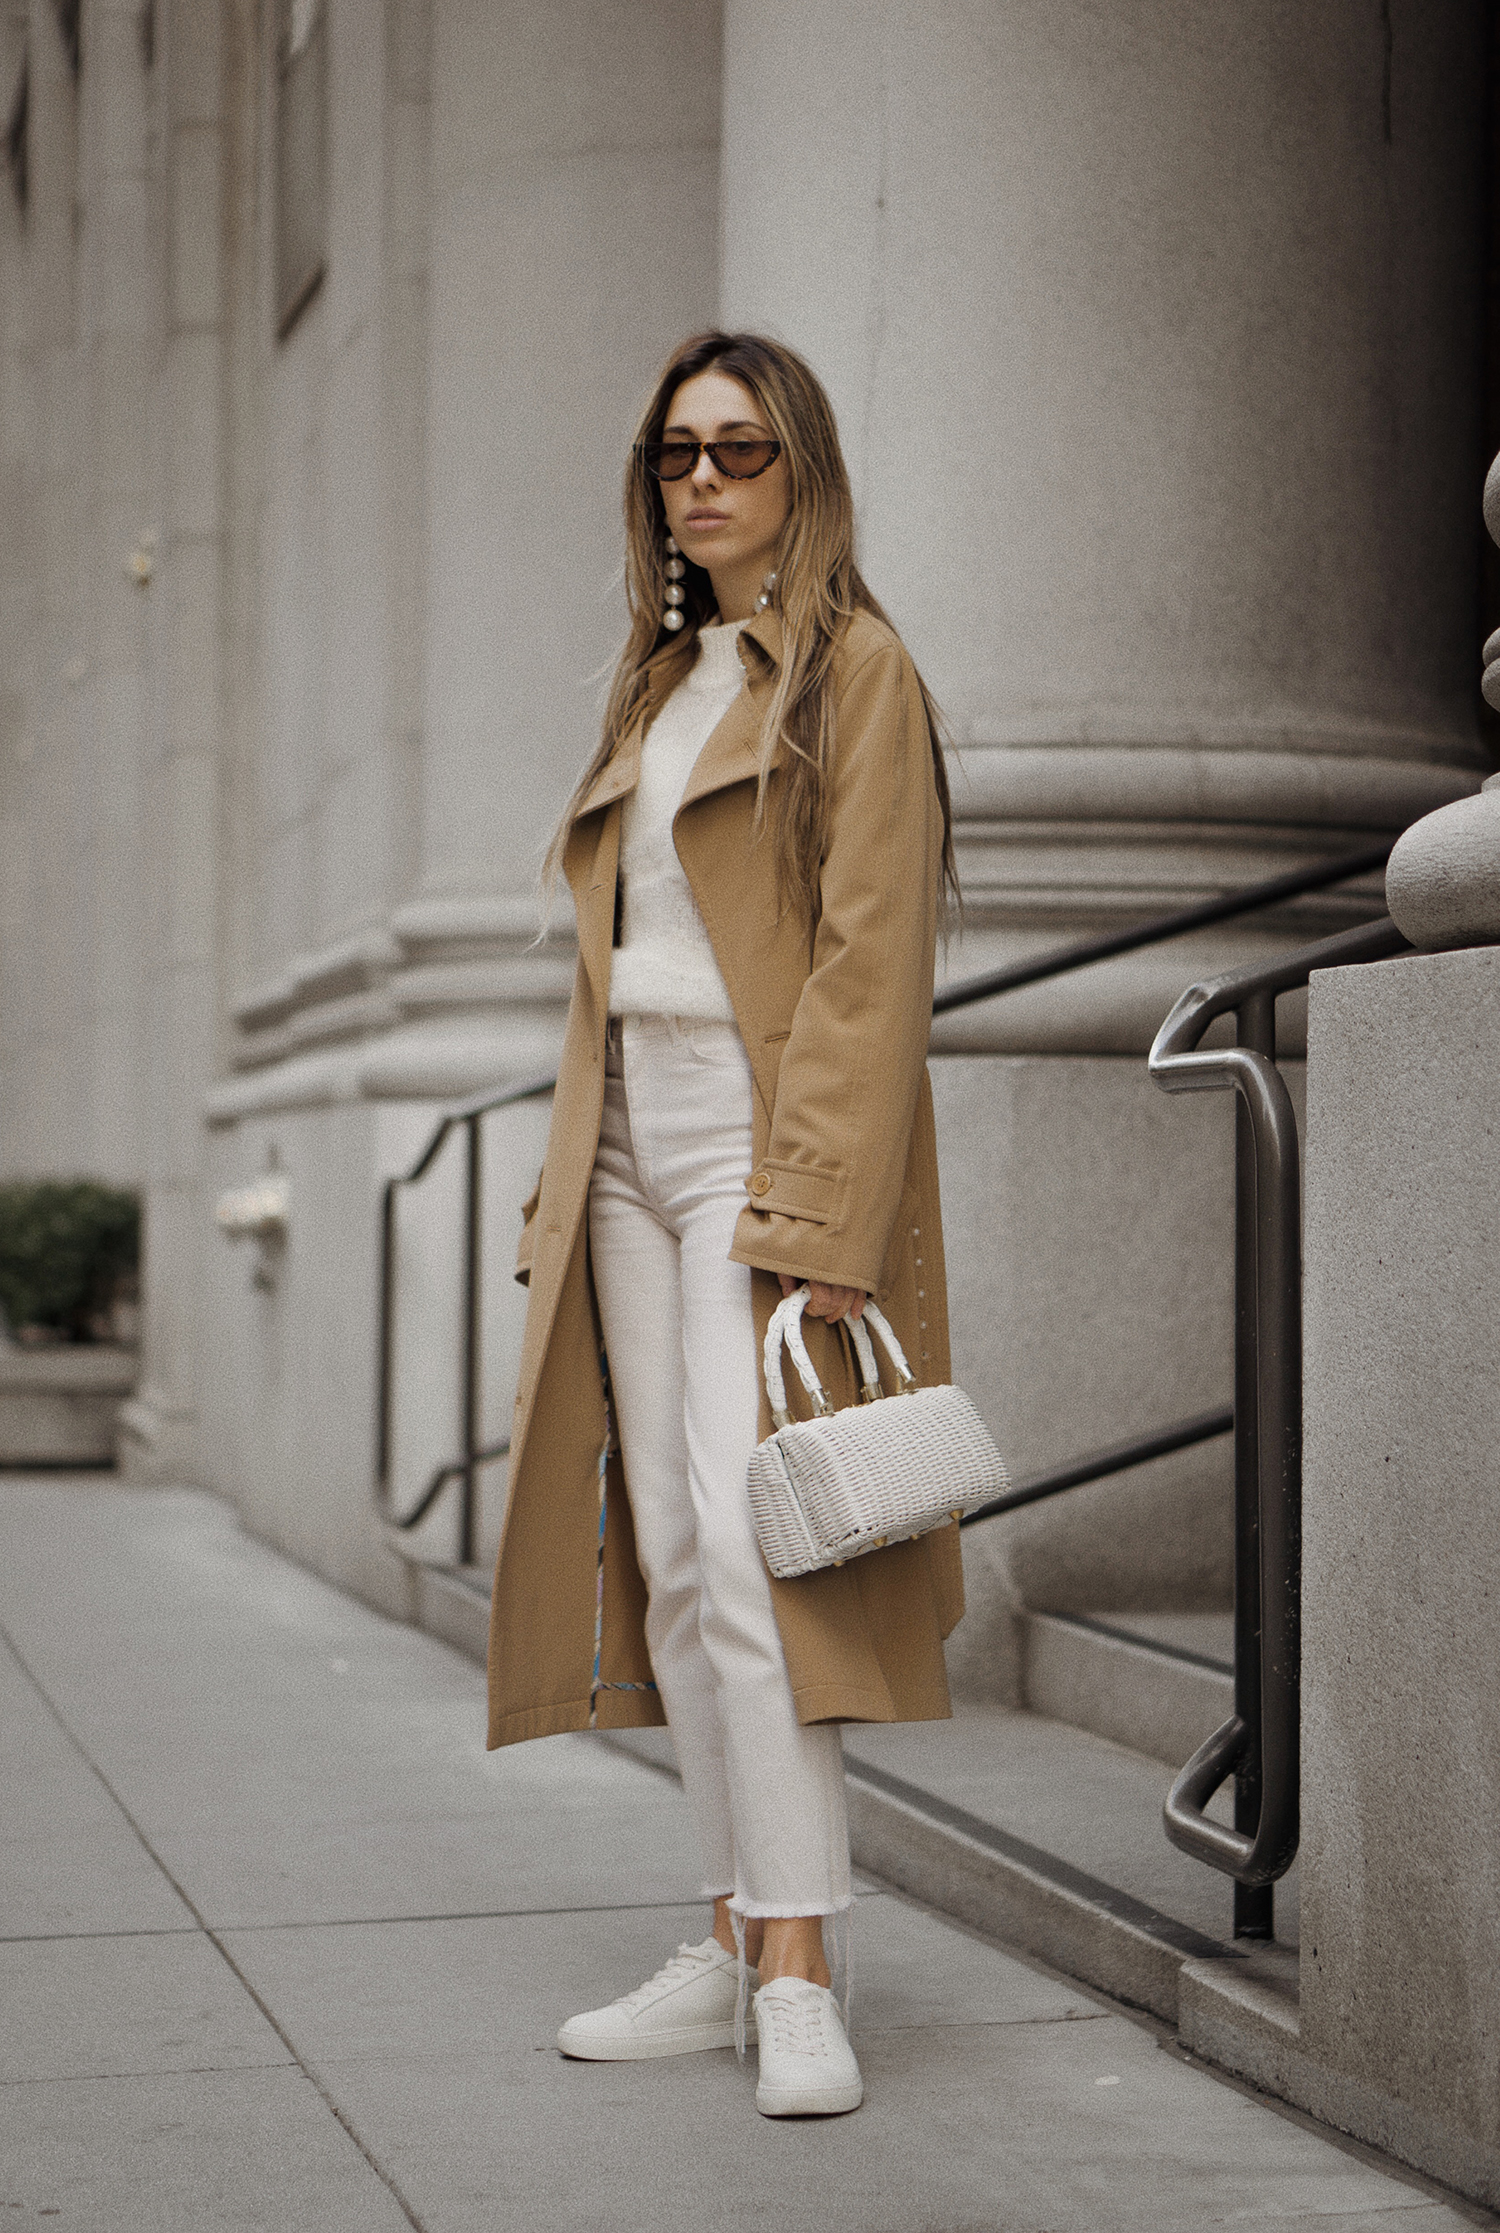 paulsmith_trenchcoat_vinceshoes_wicker_bag_white_outfit_freepeople_lenajuice_thewhiteocean_15